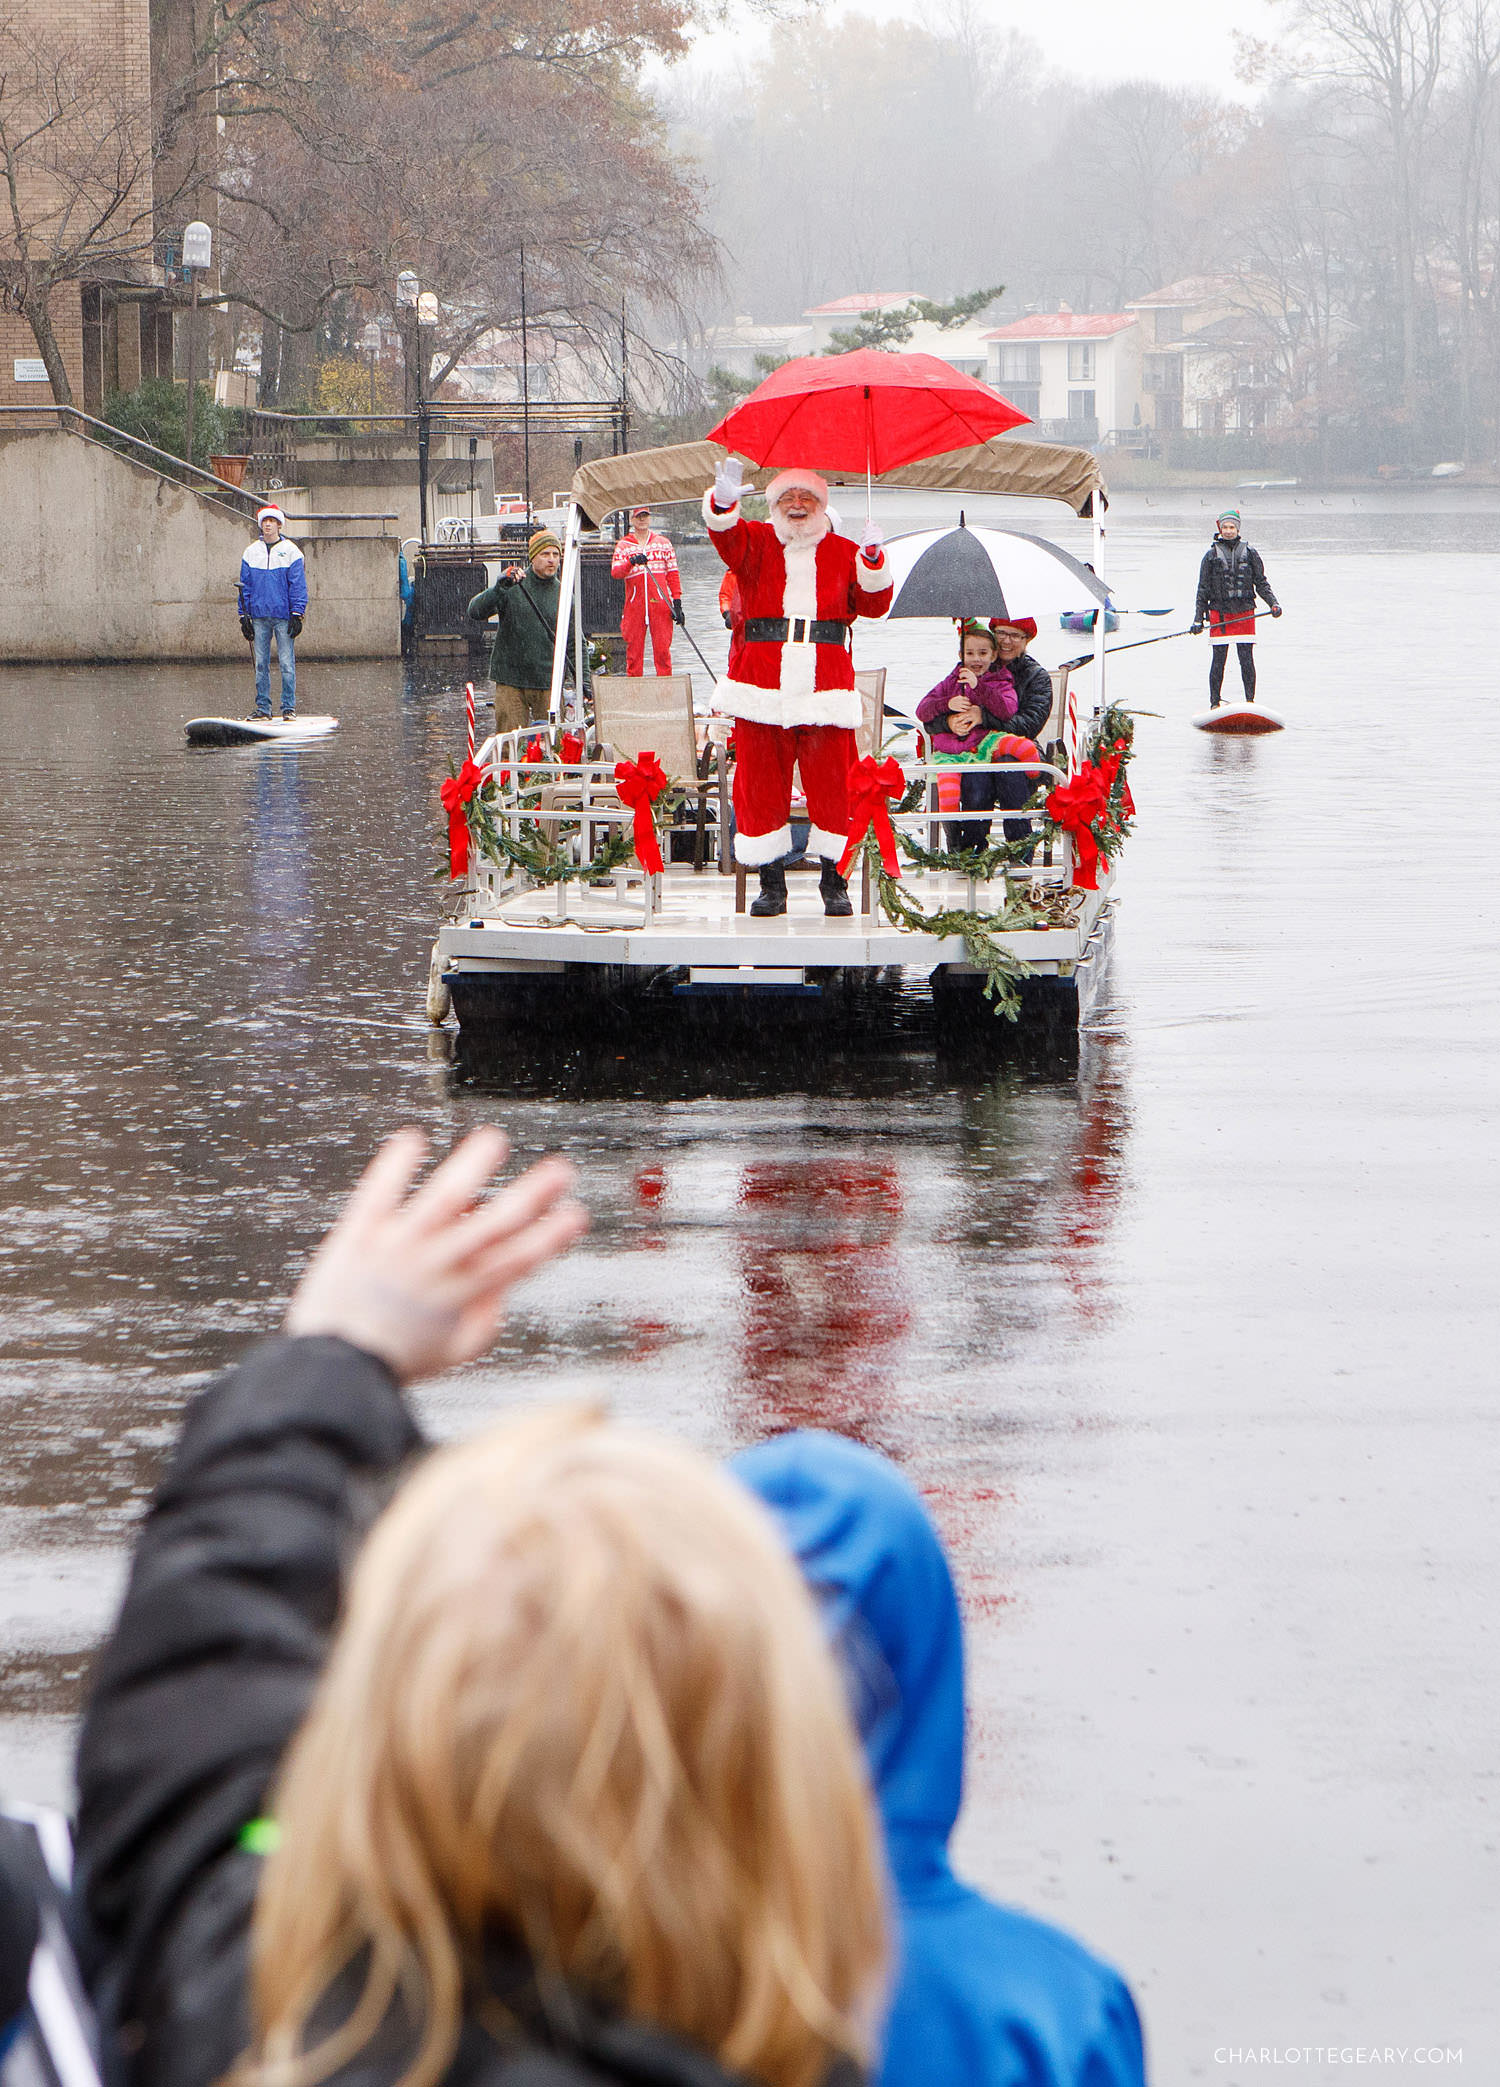 Santa arriving by boat at Lake Anne Plaza (Reston, Virginia)